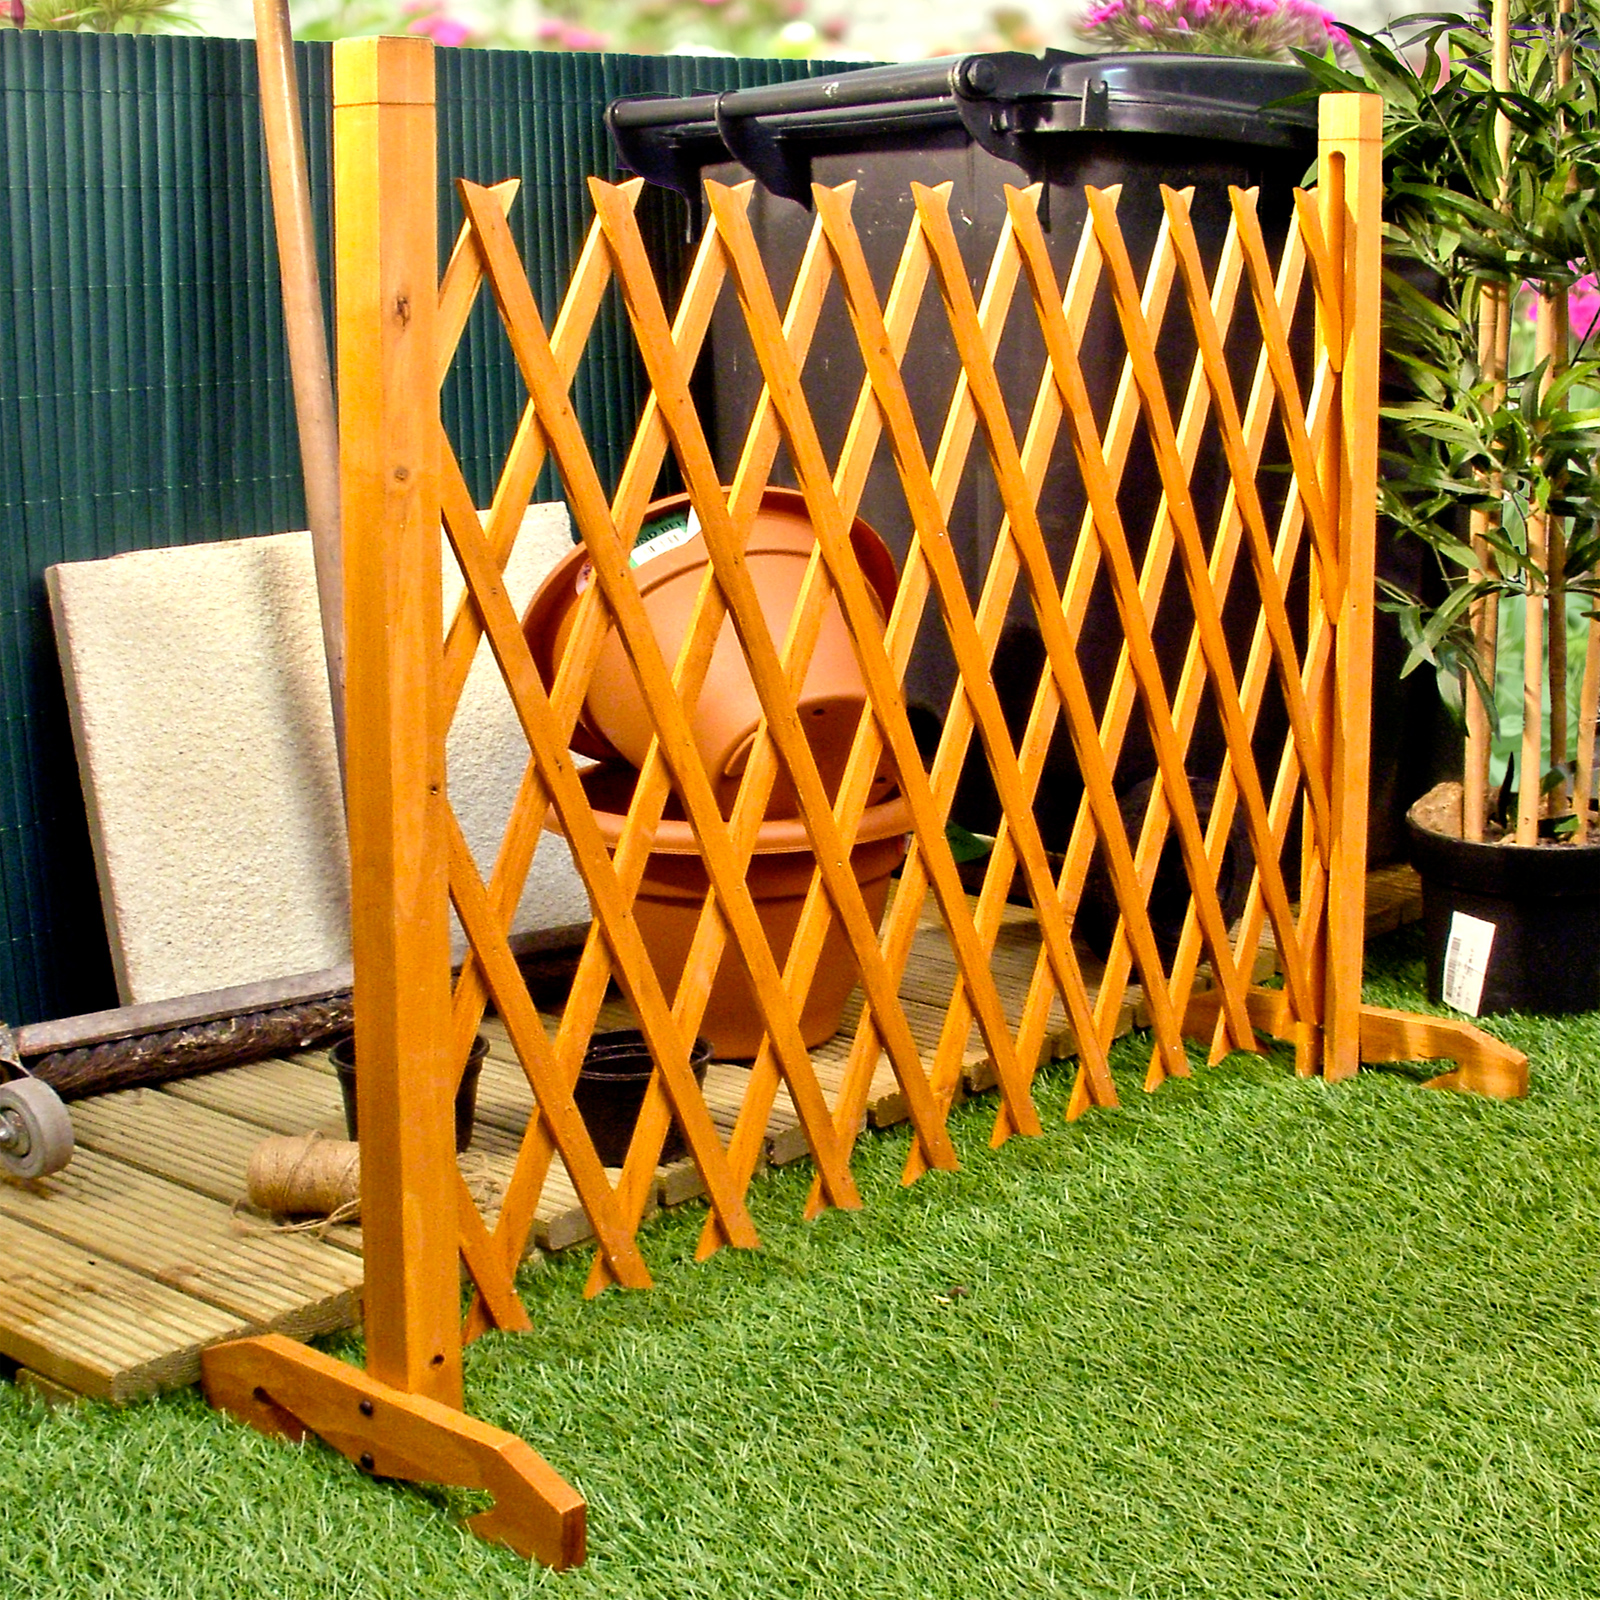 Marvelous Expanding Fence Garden Screen Trellis Style Expands To 6u00272